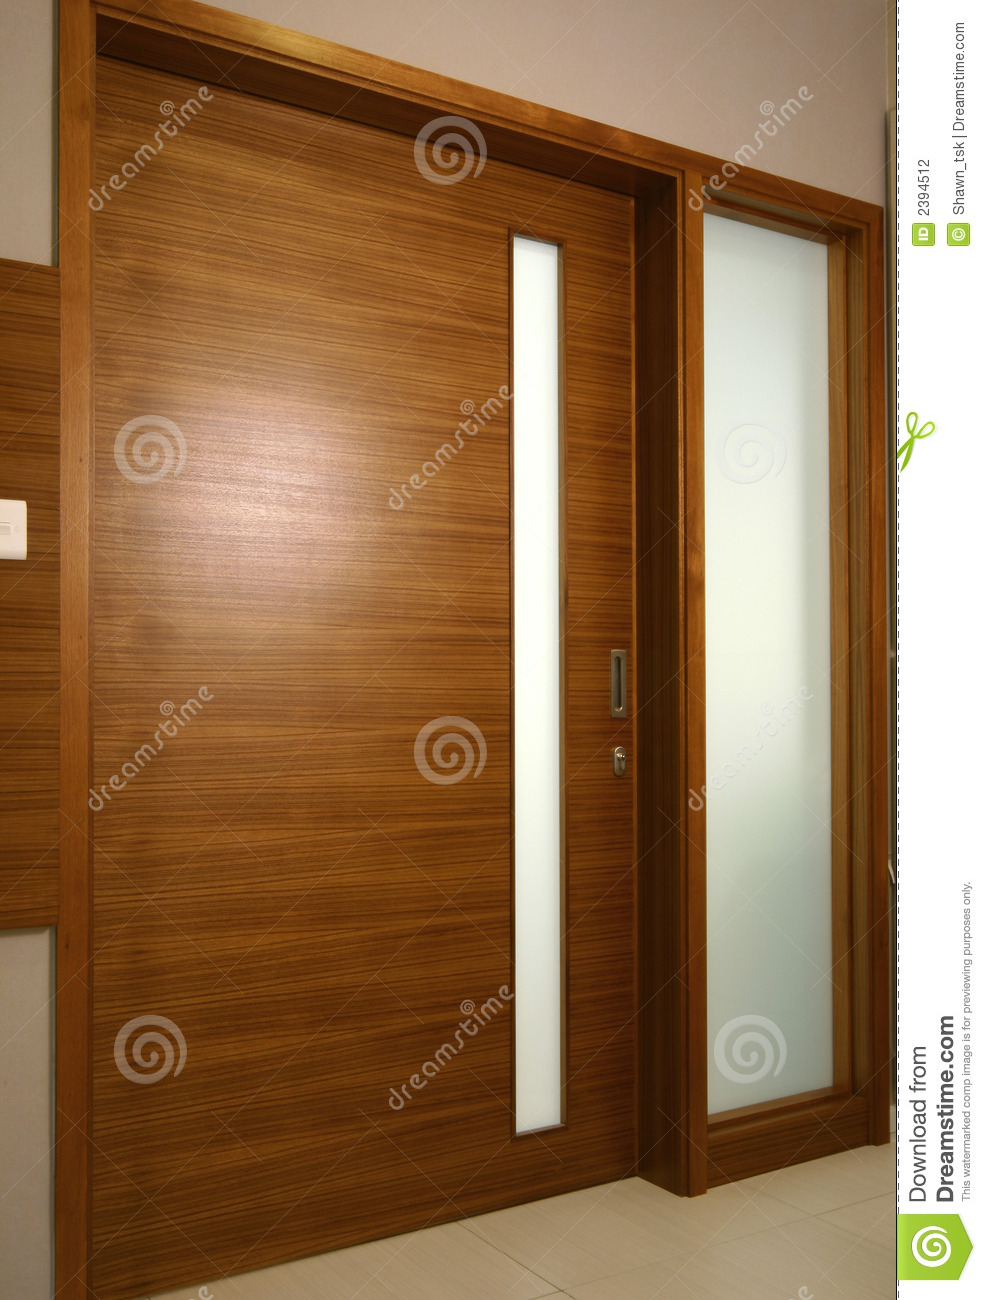 Home Hardware Doors Interior Emiliesbeauty